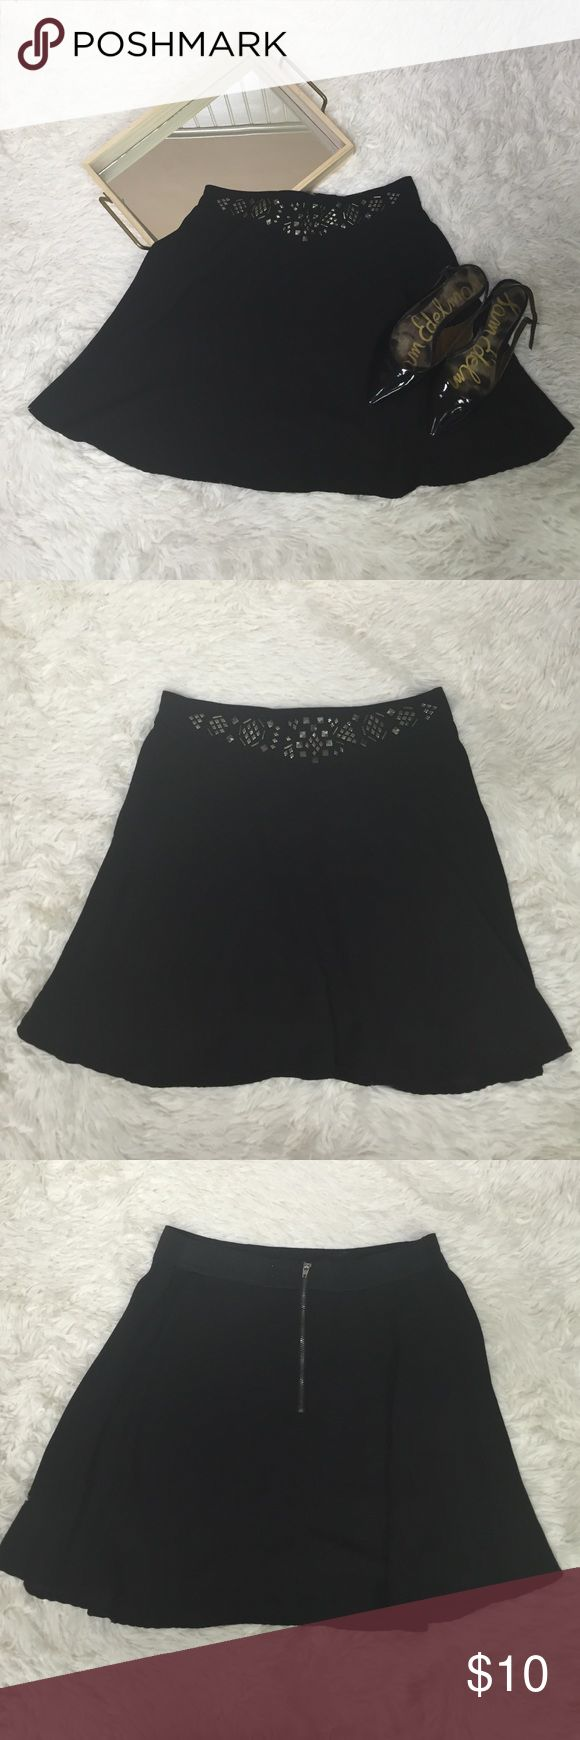 Anthropologie Silence + Noise embellished skirt Anthropology silence + noise embellished black skirt. Size large laying flat measures hip to hip 14 inches unstretched. The whole back of the skirt has elastic that stretches and a zipper. It measures top to bottom 17 inches. silence + noise Skirts